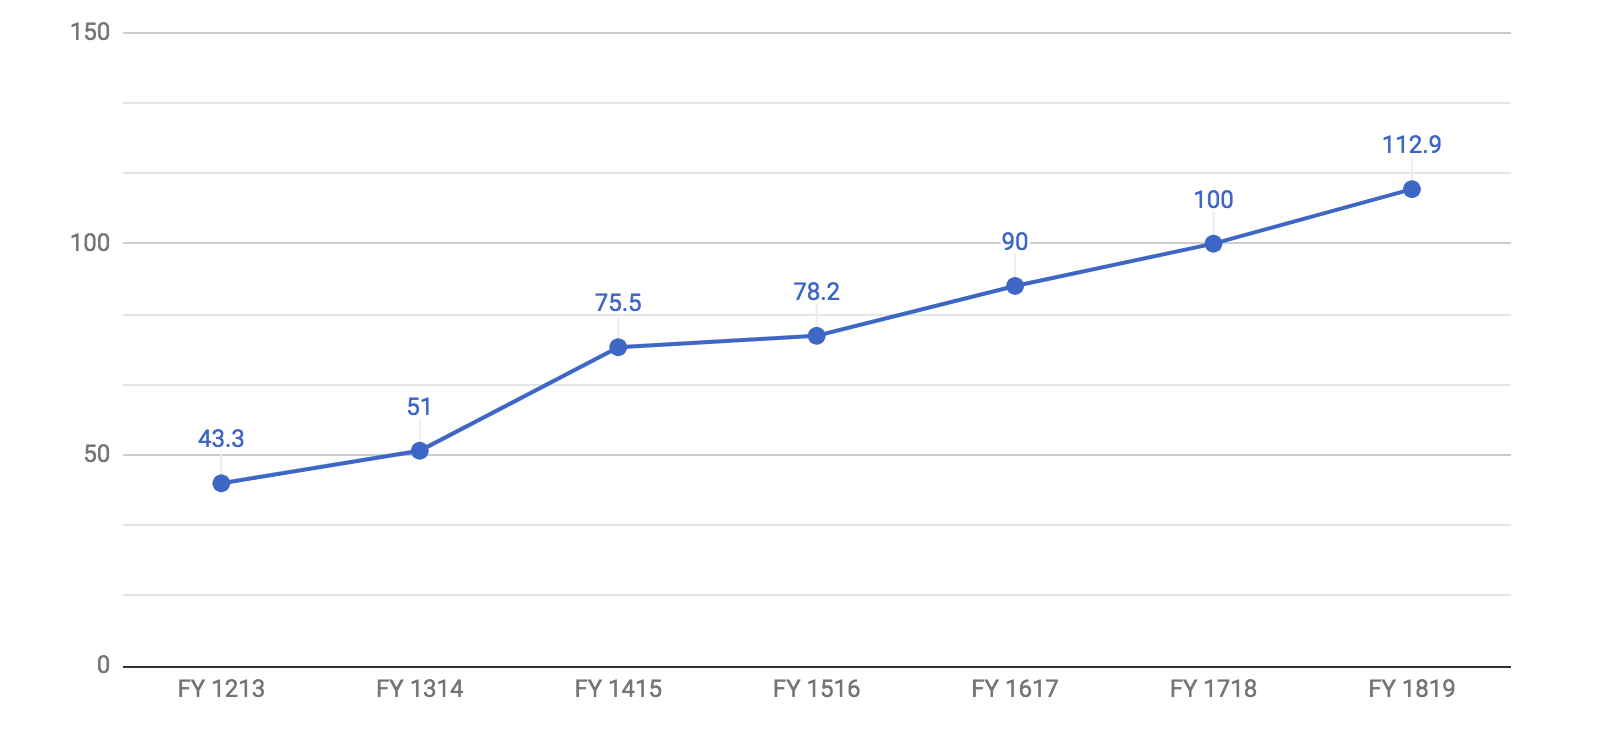 Total Wikimedia Revenue from FY1819 Fundraising Report